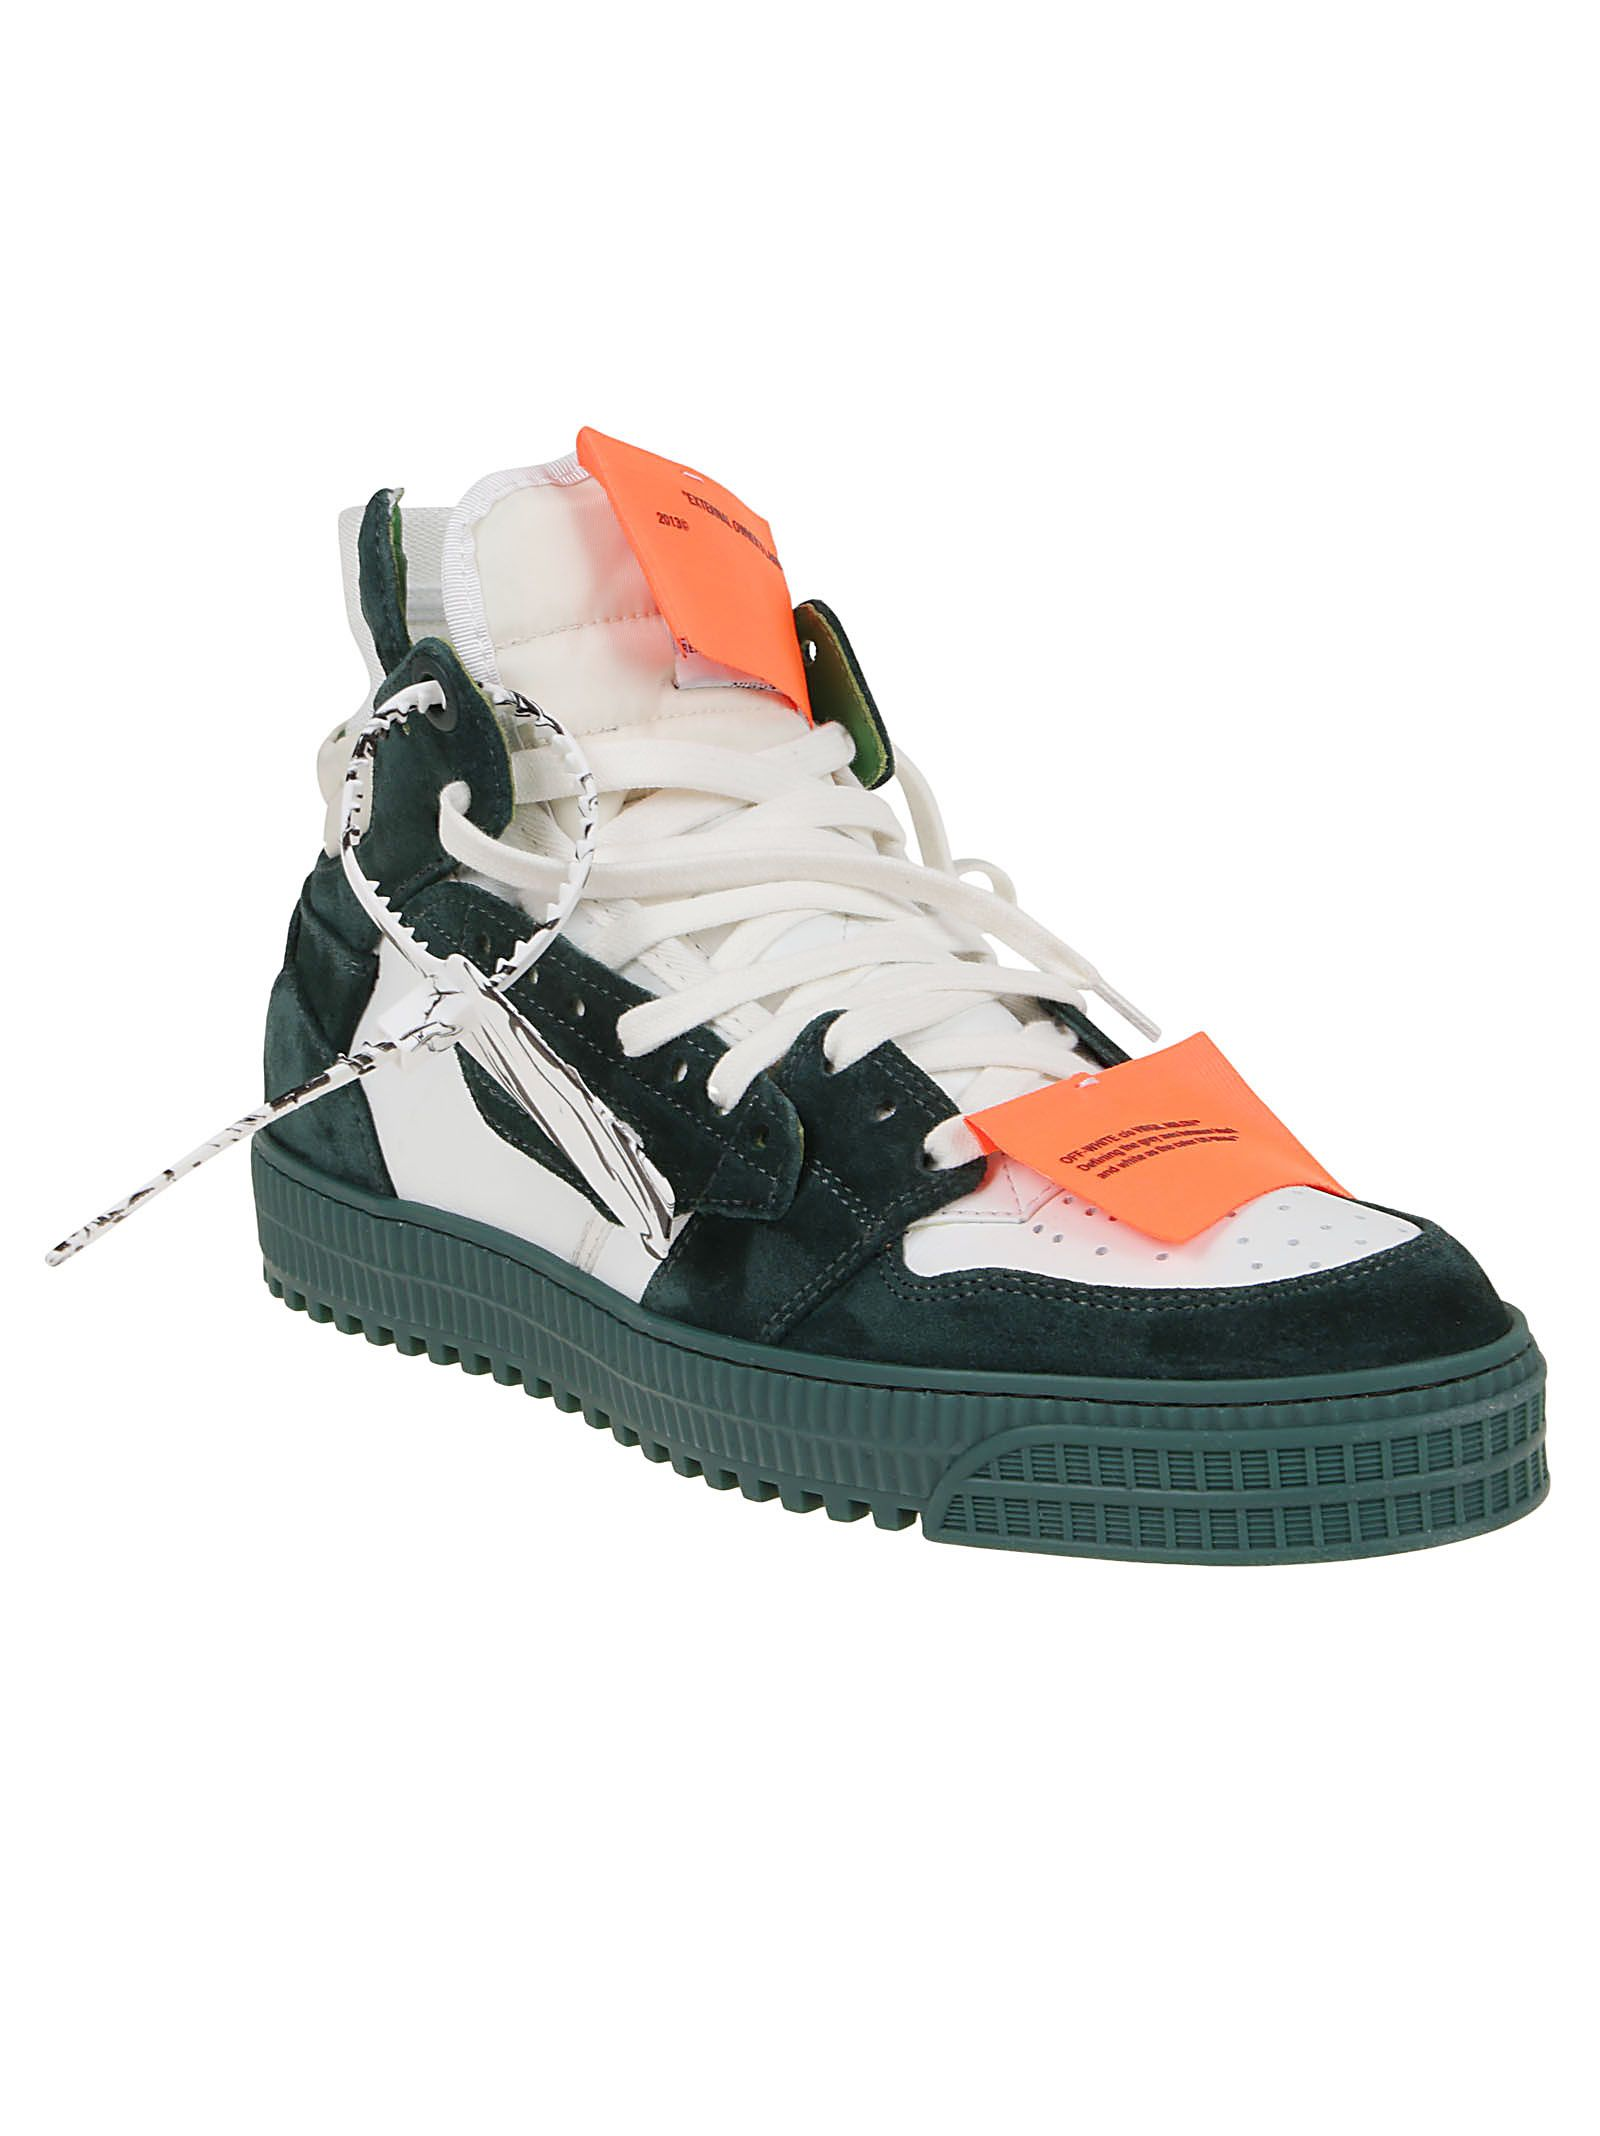 OFF-WHITE Suedes OFF-WHITE MEN'S WHITE SUEDE HI TOP SNEAKERS